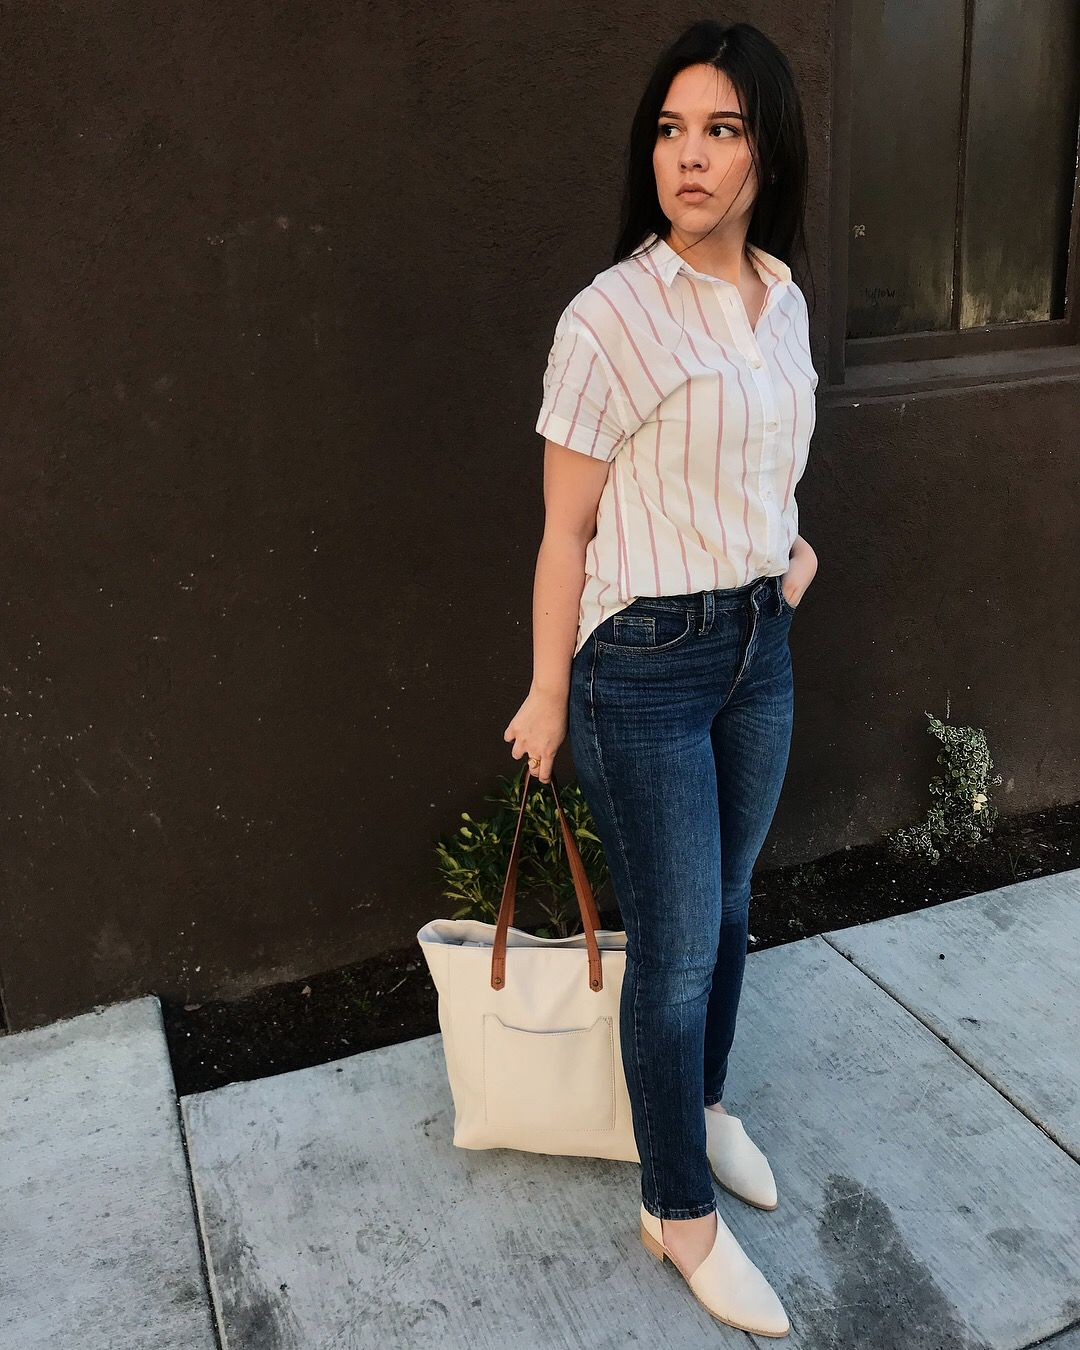 64905ecd32ae43 Target Universal Thread striped shirt, straight jeans, shoes, and purse.